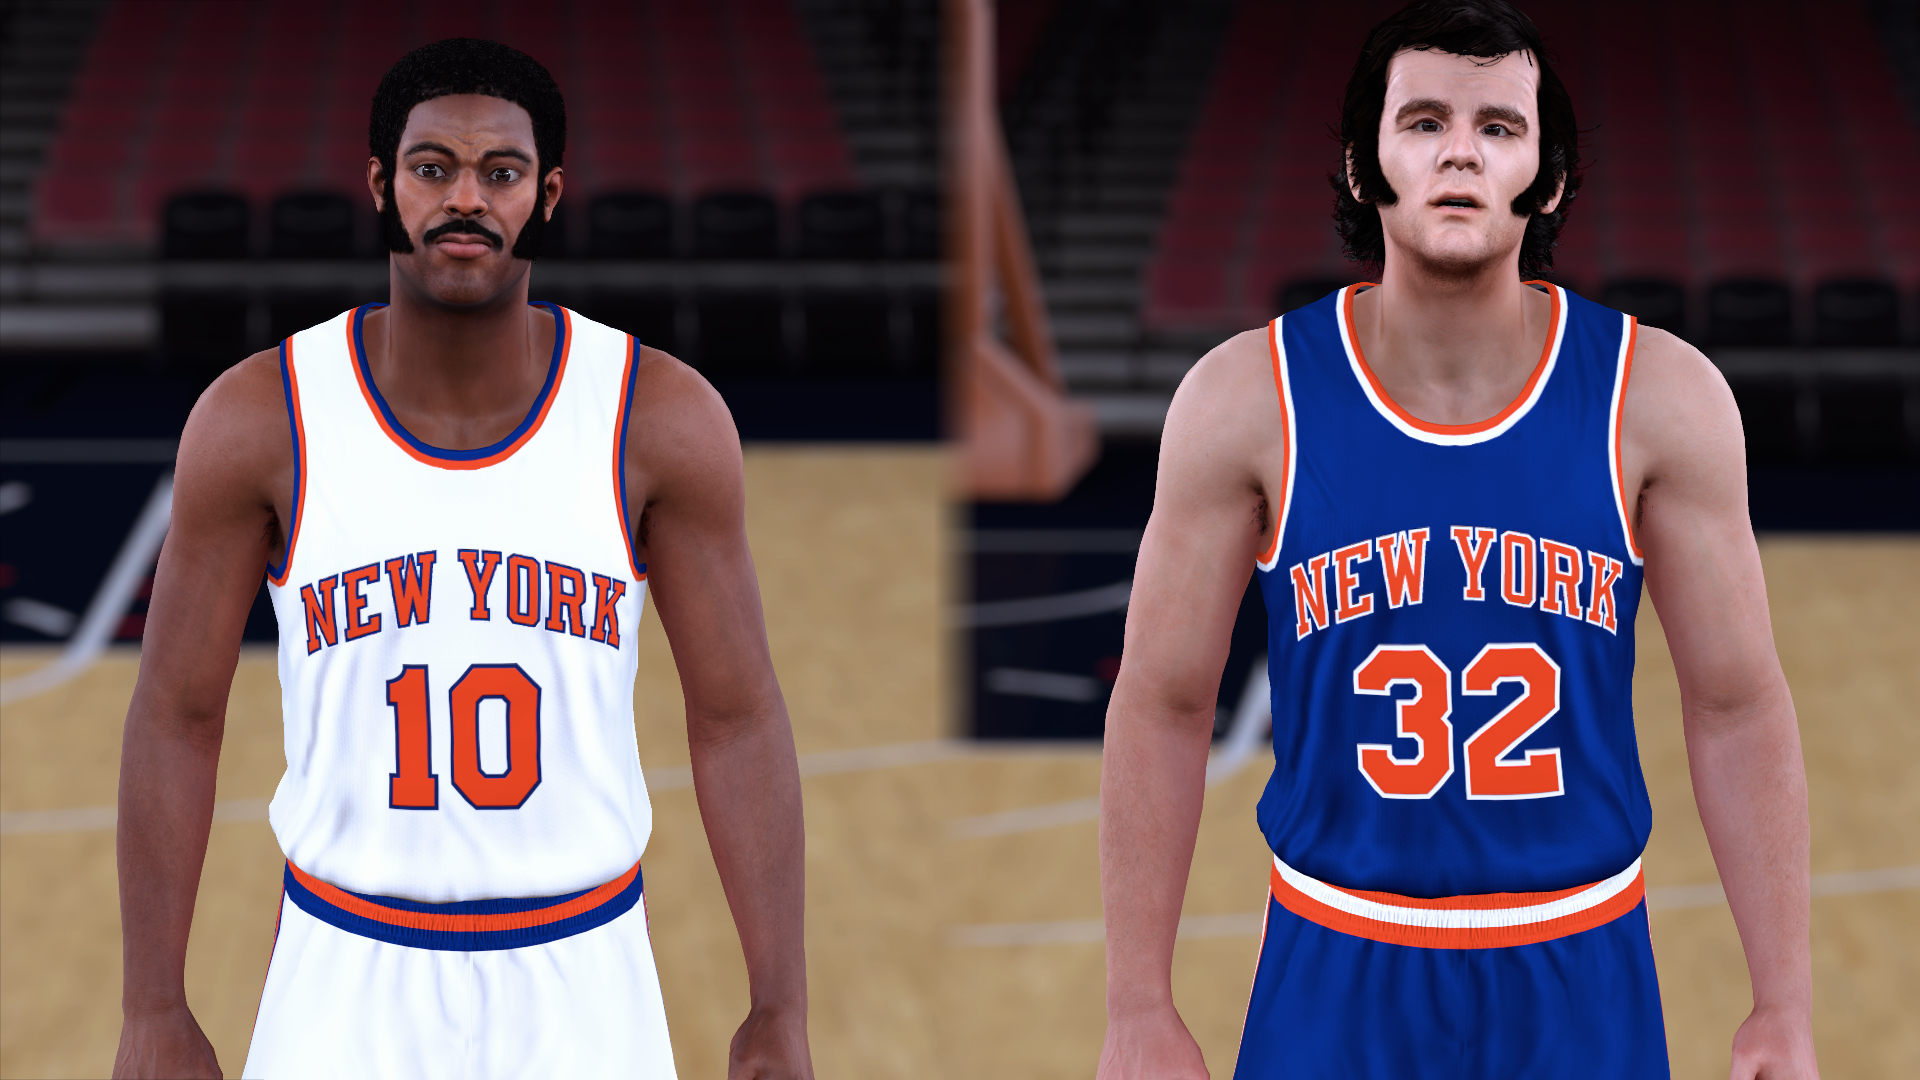 bc8fcc5c9 NLSC Forum • Downloads - 1971-1972 Knicks Jerseys - PeacemanNOT